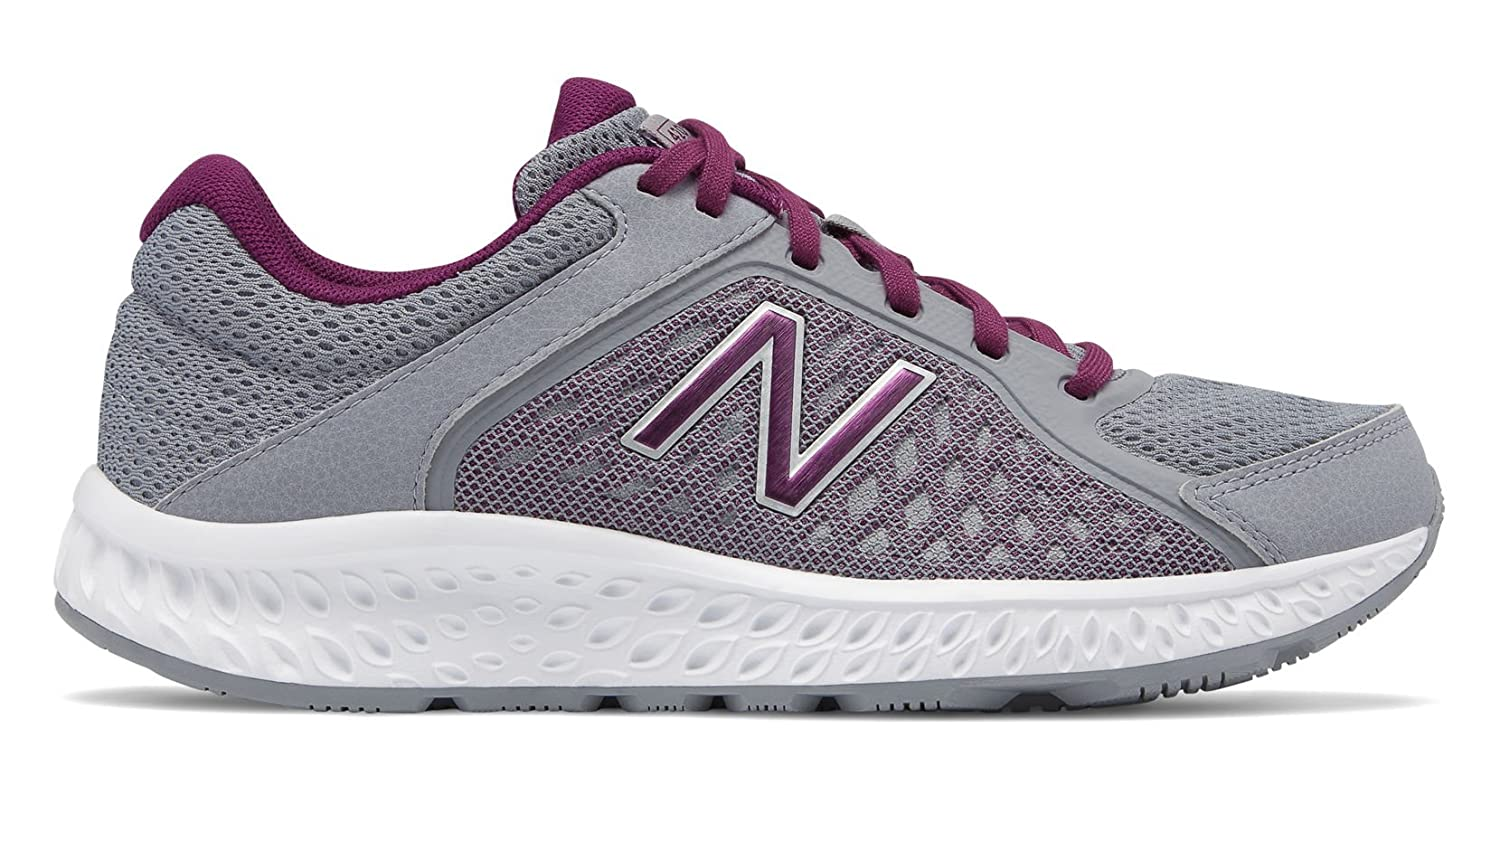 New Balance Women's 420v4 Cushioning Running Shoe B0791X9FWT 11 D US|Steel/Claret/Silver Metallic